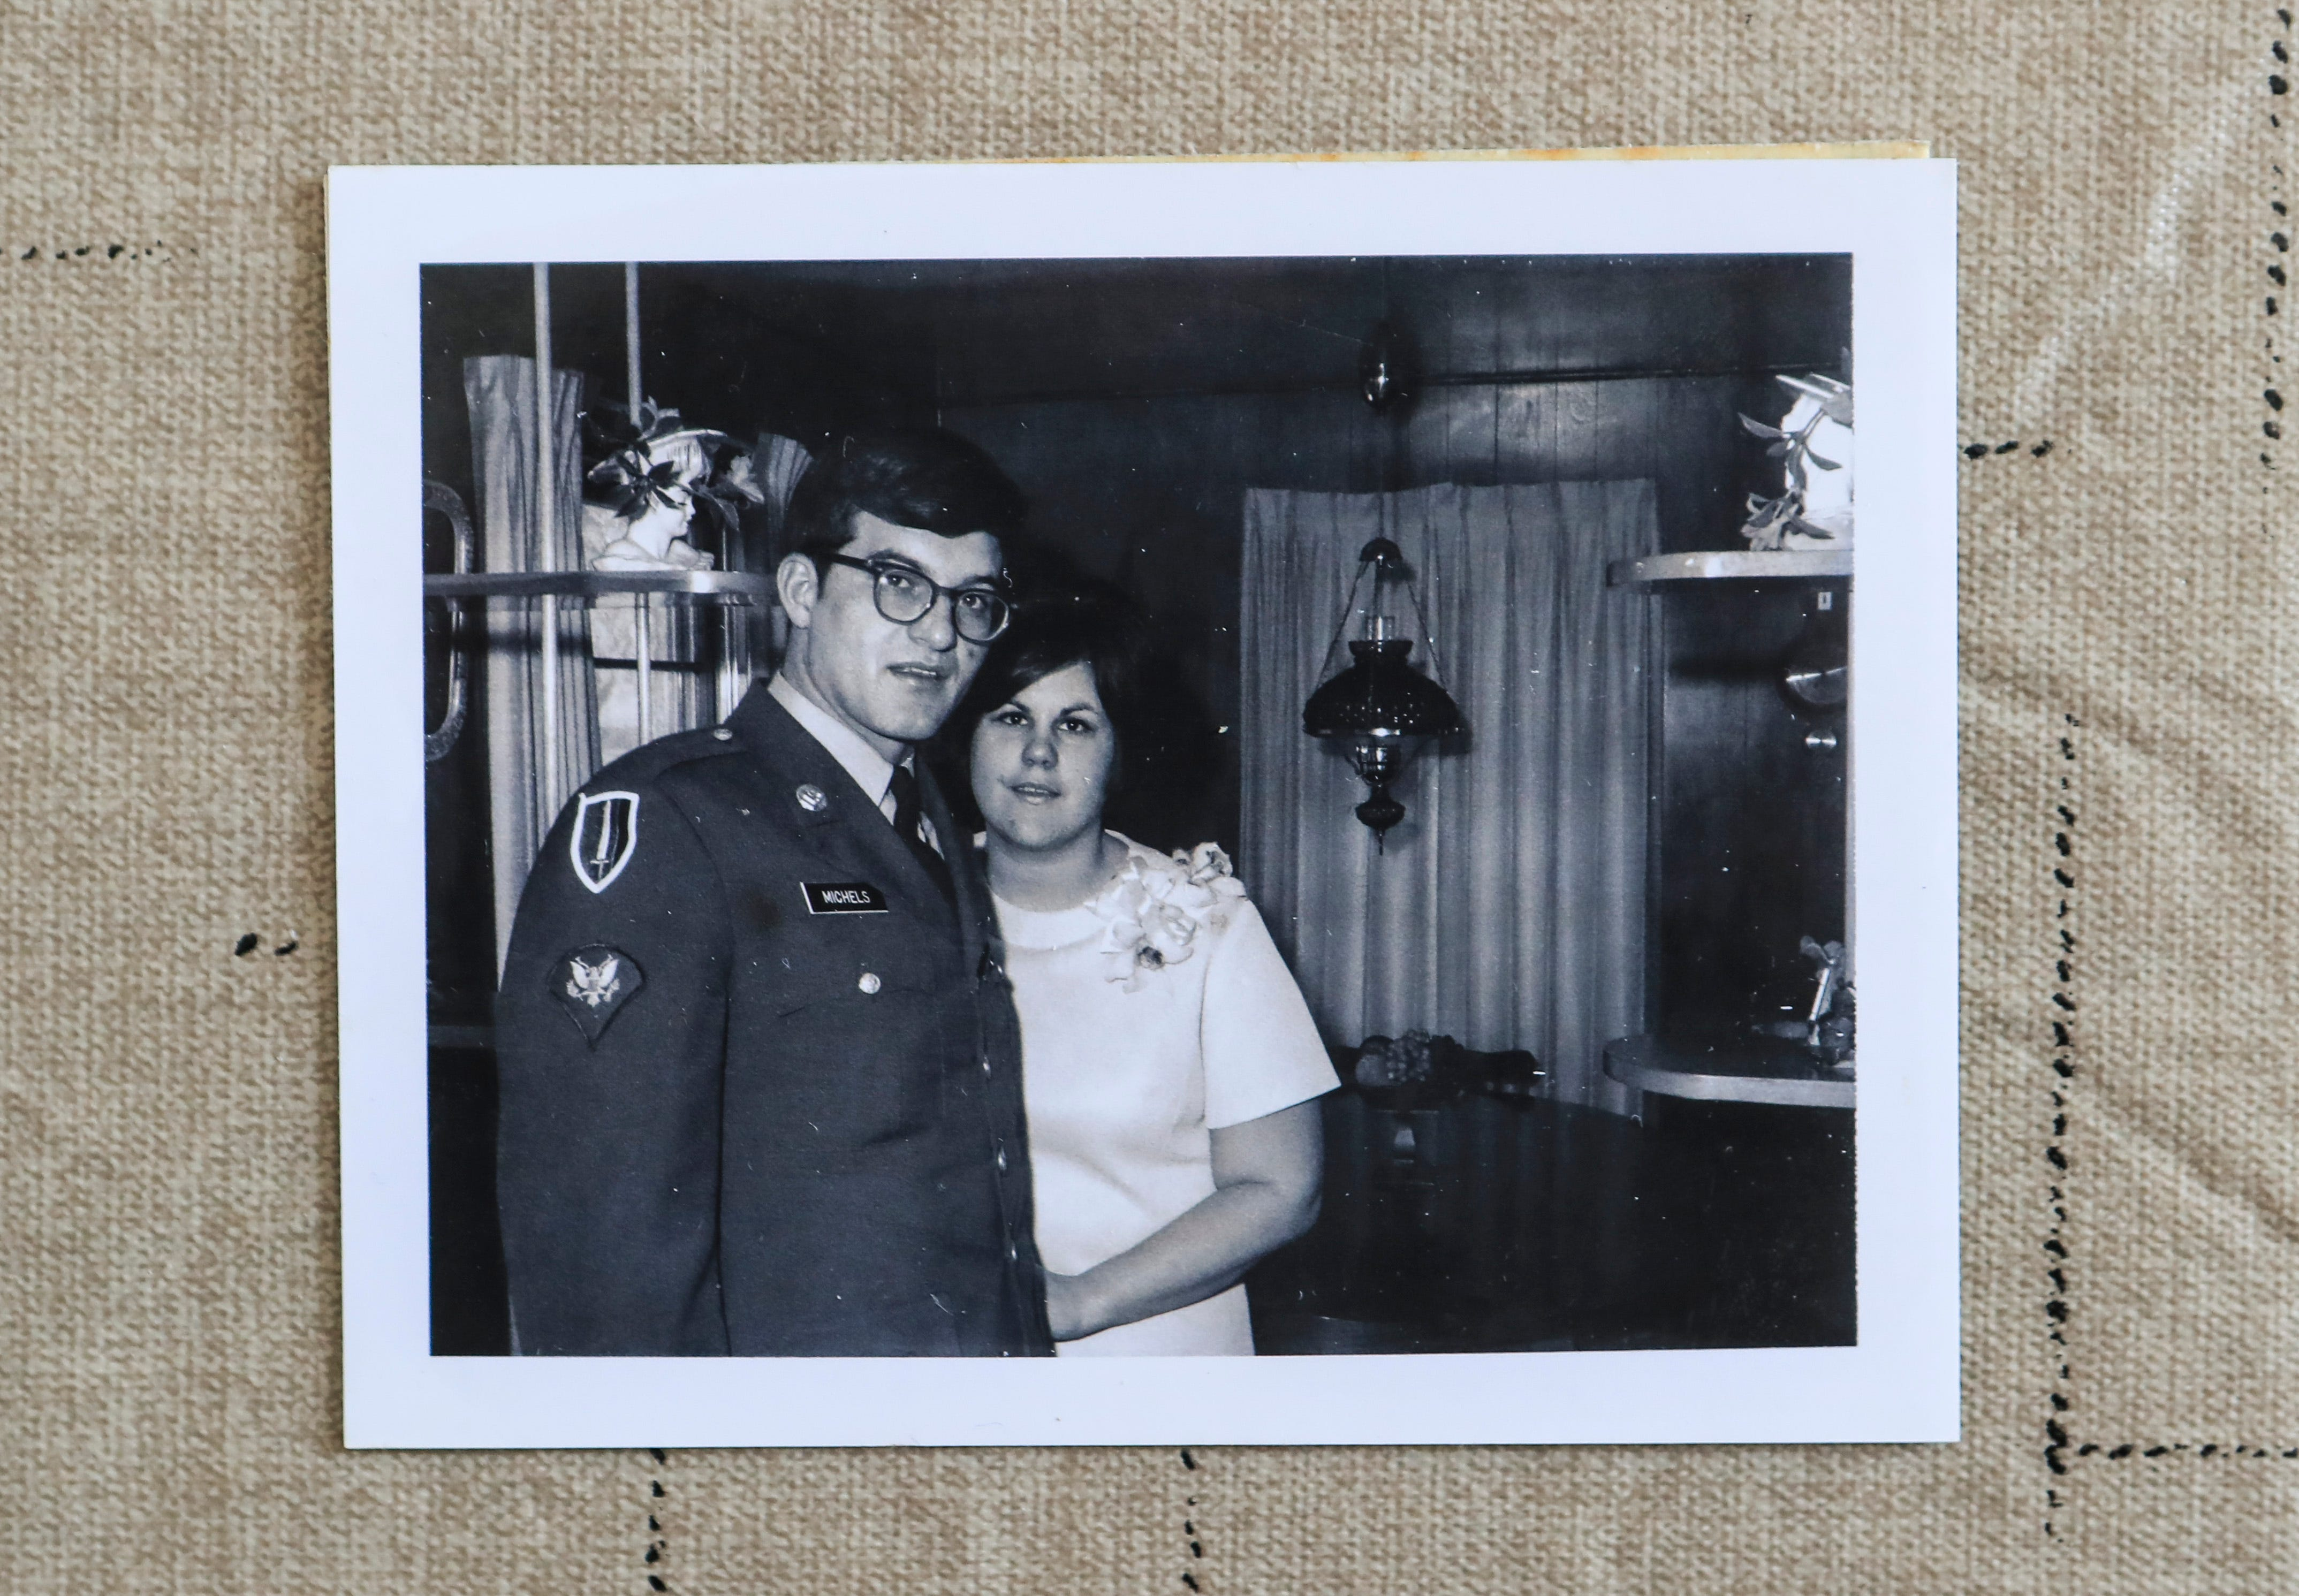 The wedding snapshots may have faded in color but not the love for Pat and Roger Michels of Milltown, Indiana, who have been married for 50 years. He was an Army soldier stationed in Vietnam who wrote a letter to Pat on the urging -- or dare as he would laughing say -- from a friend. It was a simple ceremony but their love has grown from that day. Feb. 3, 2021